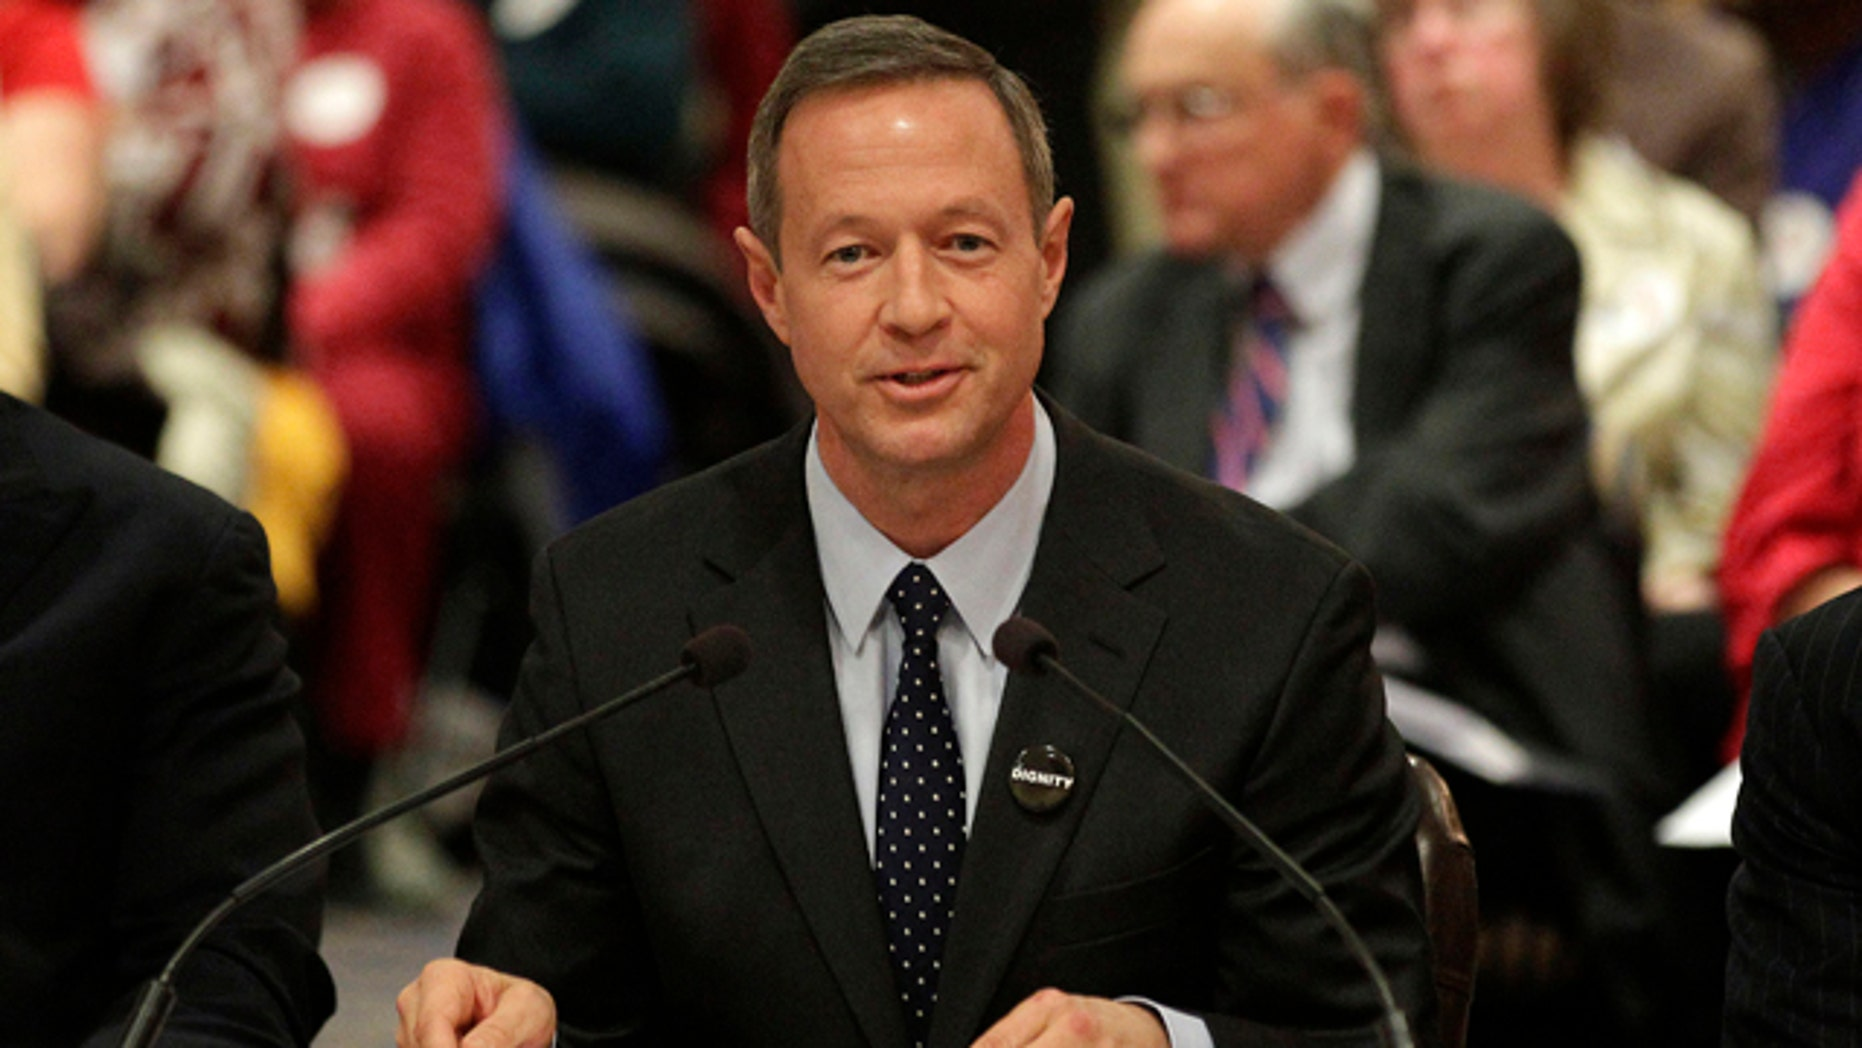 Feb. 10, 2012: Maryland Gov. Martin O'Malley testifies in support of a same-sex marriage bill during a committee hearing in Annapolis, Md.